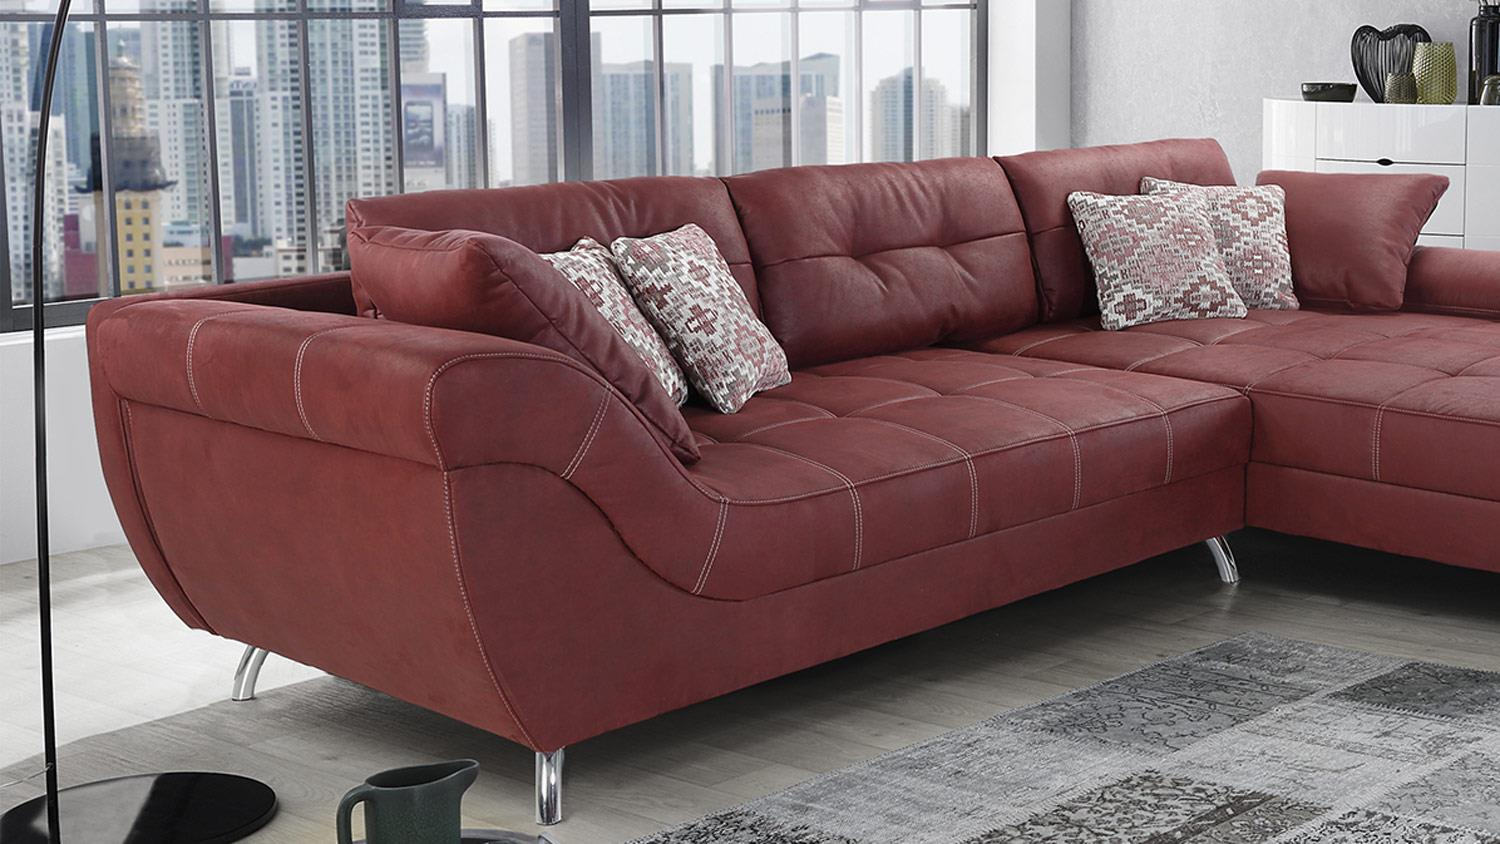 Wohnlandschaft San Francisco Sofa Ecksofa Polstersofa In Antik Rot